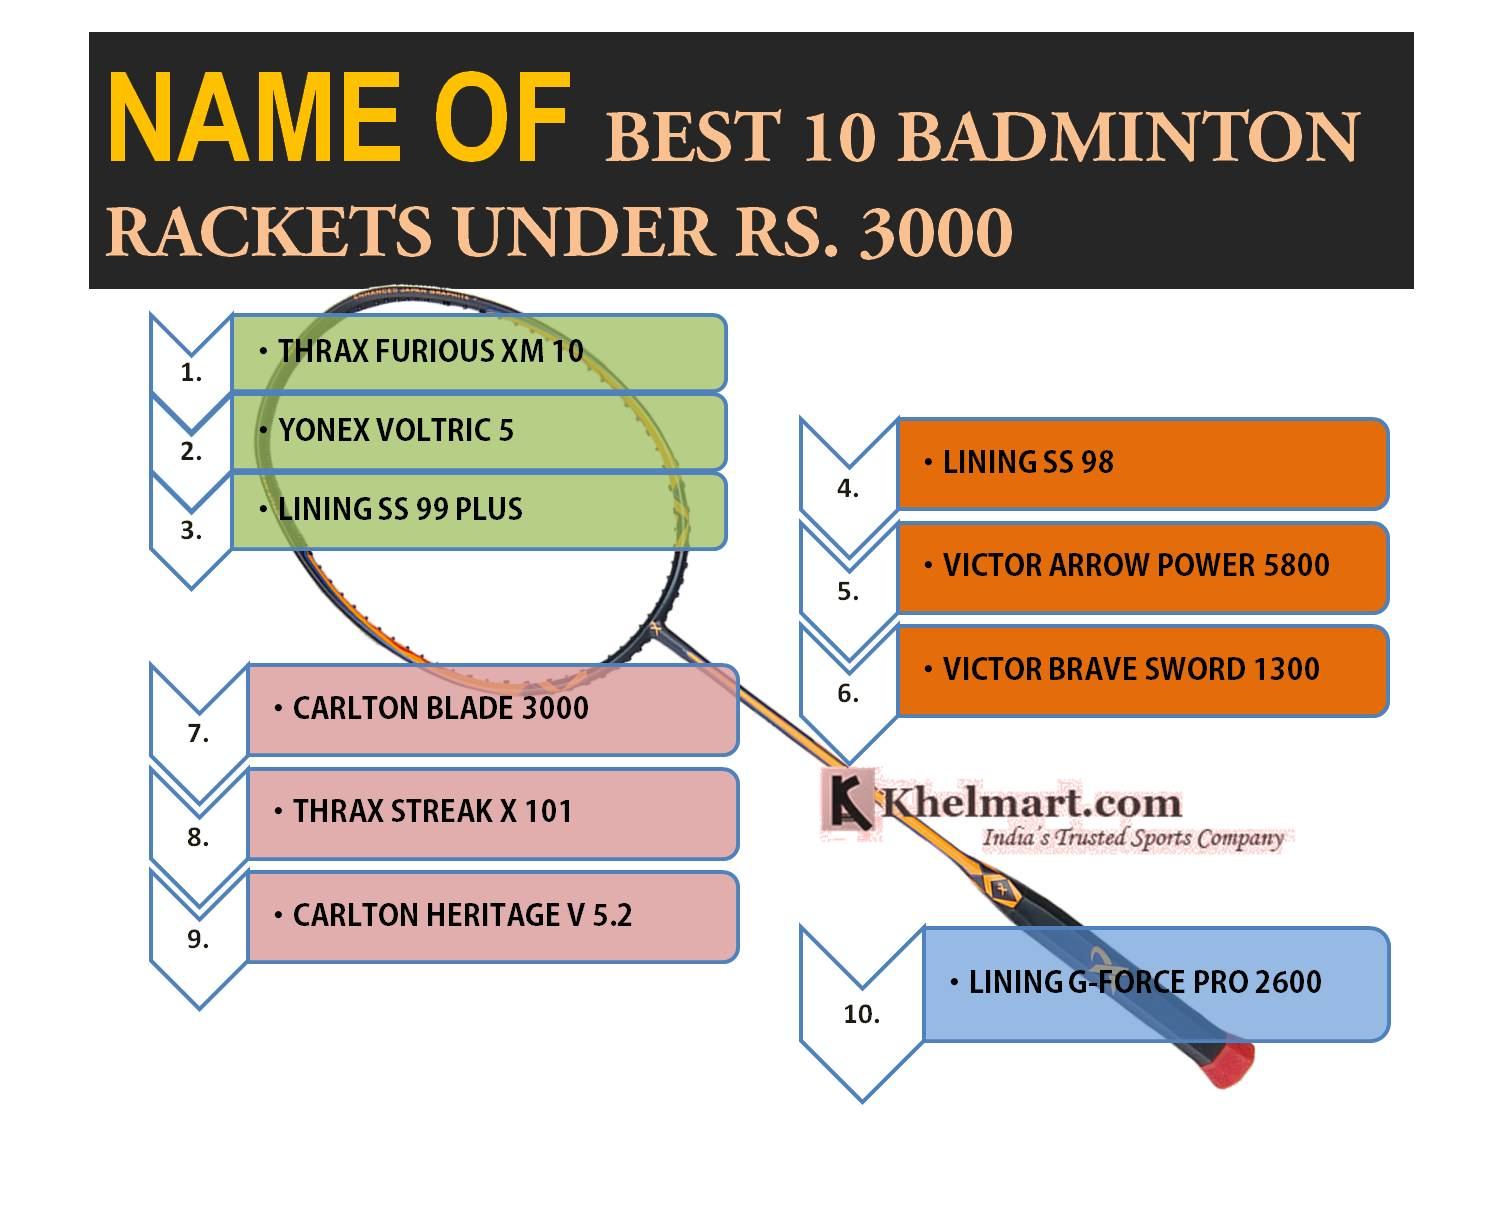 NAME_OF_BEST_10_BADMINTON_RACKETS